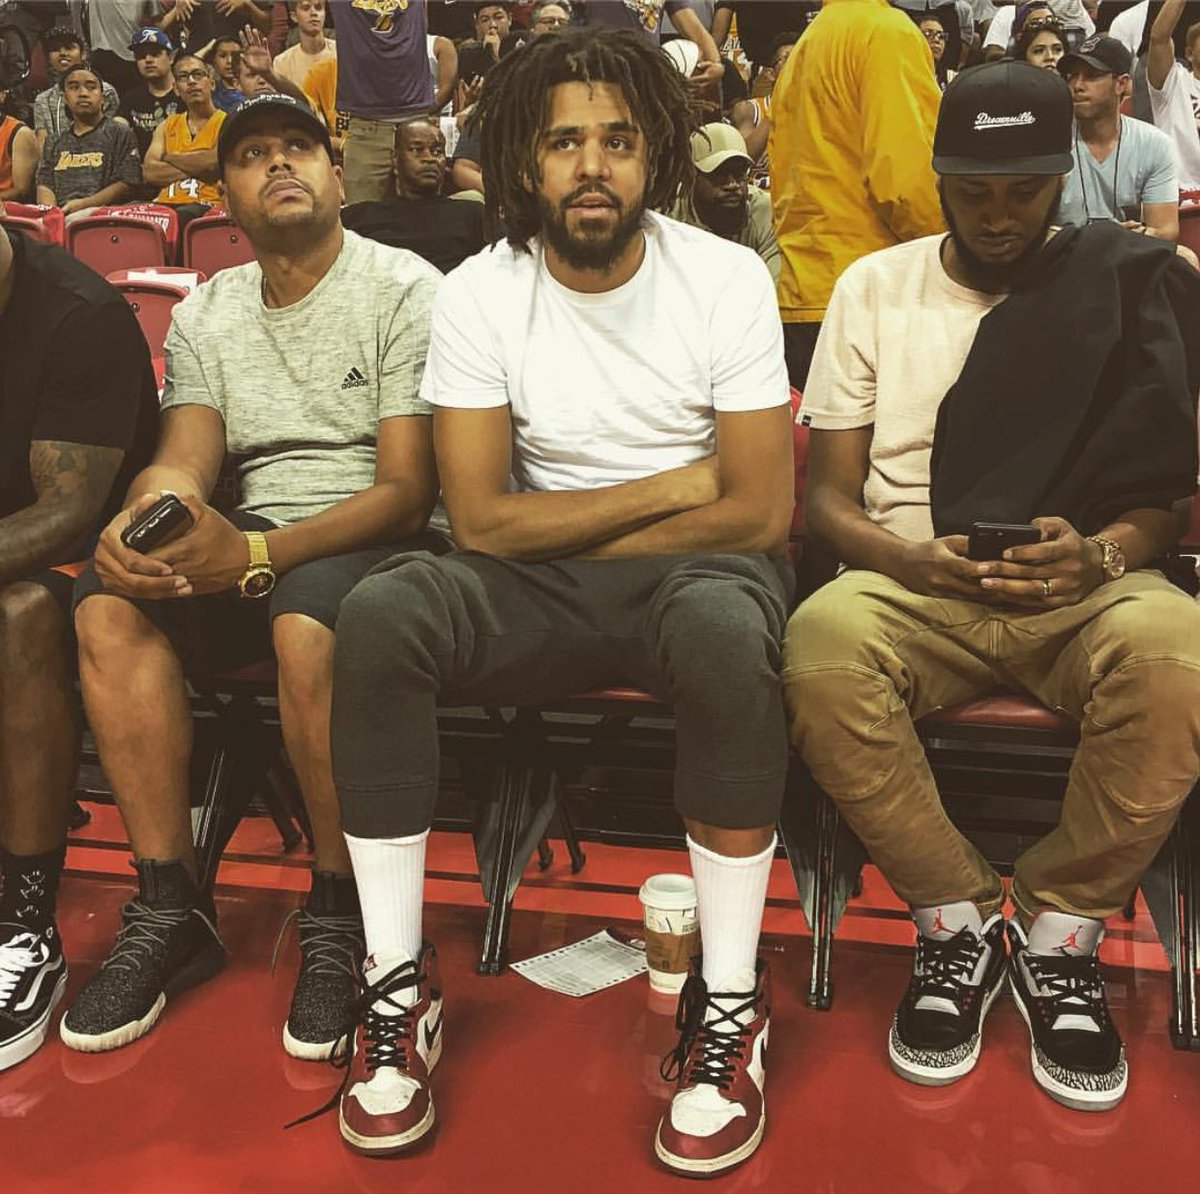 separation shoes 3e460 a5402 j cole in the air jordan 1 high og chicago watches dennis1smithjr at  nbasummerleague